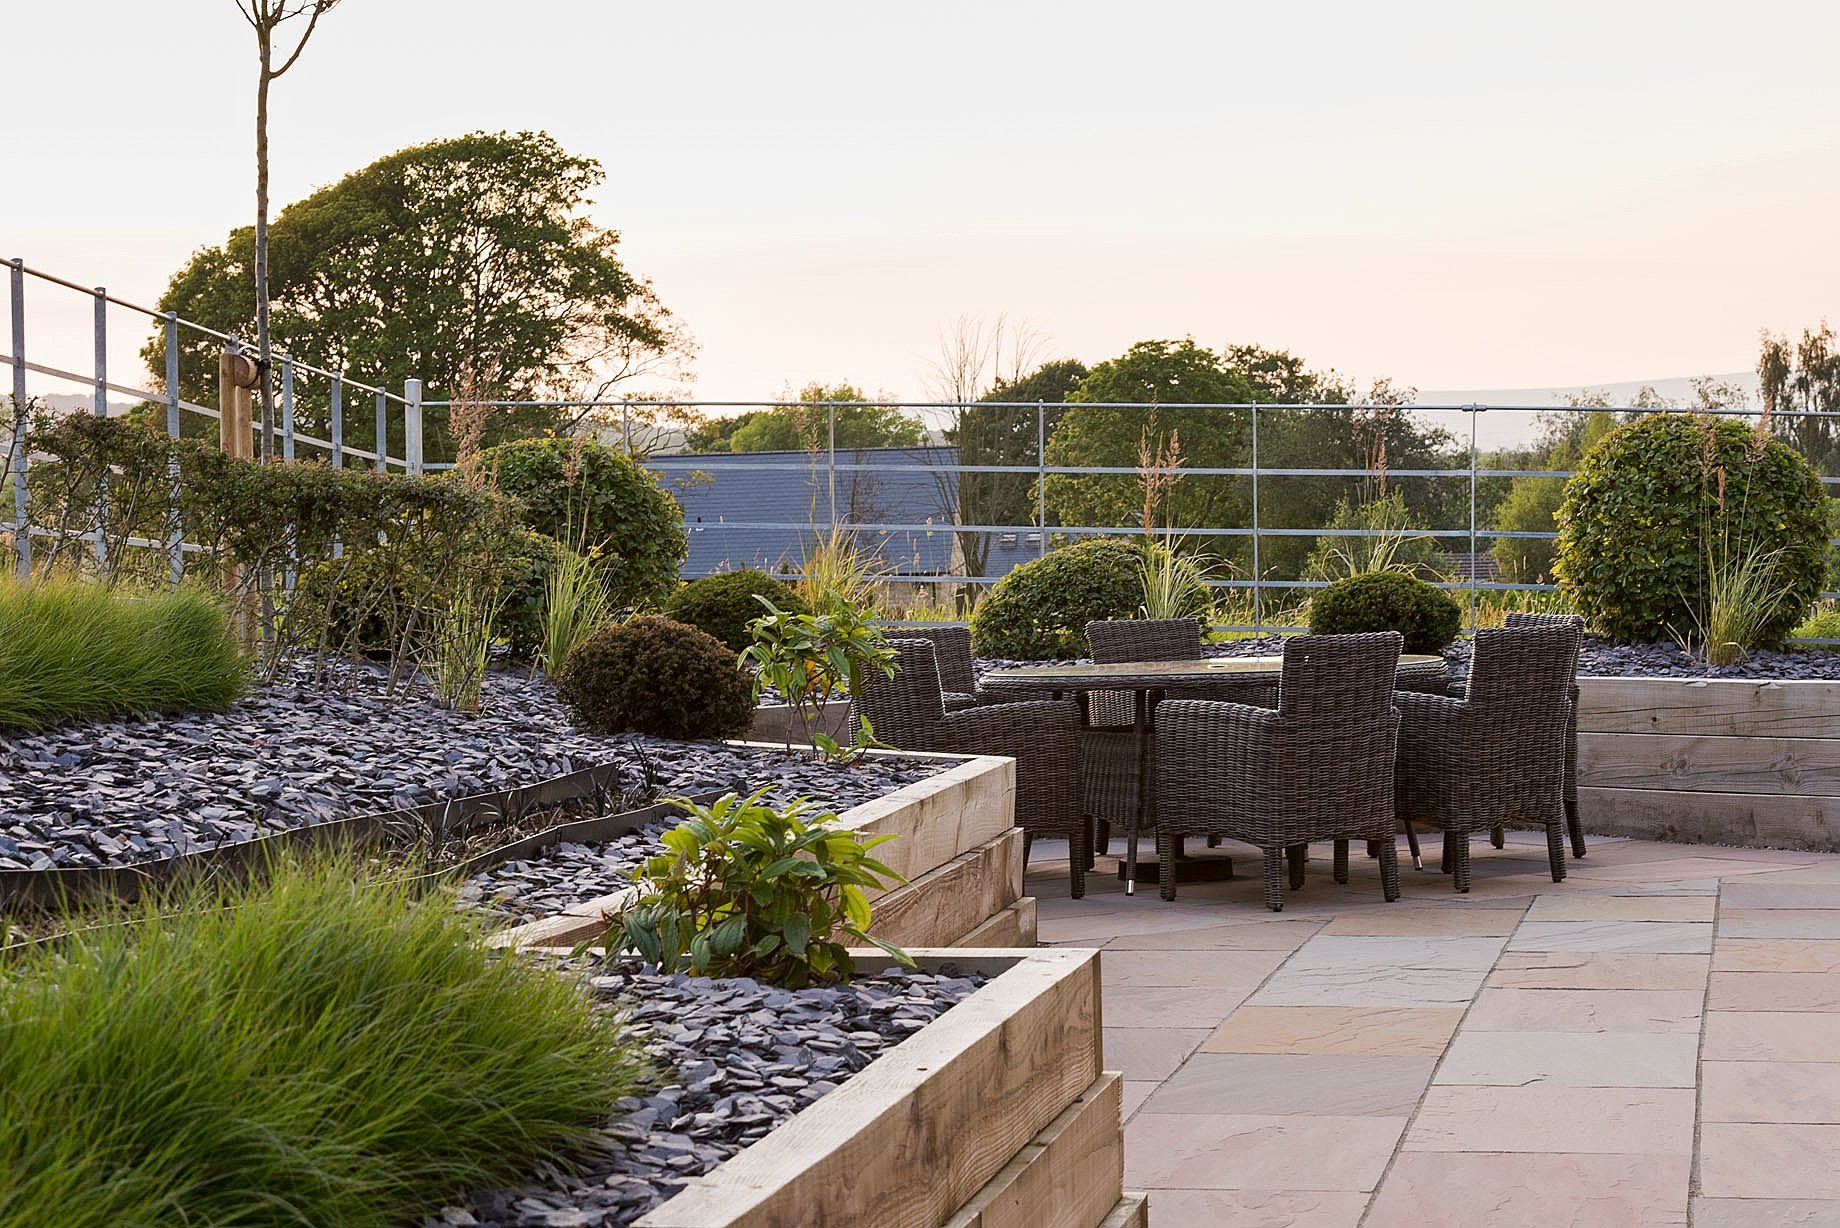 Rattan patio furniture. Contemporary Planting Scheme. Countryside views.